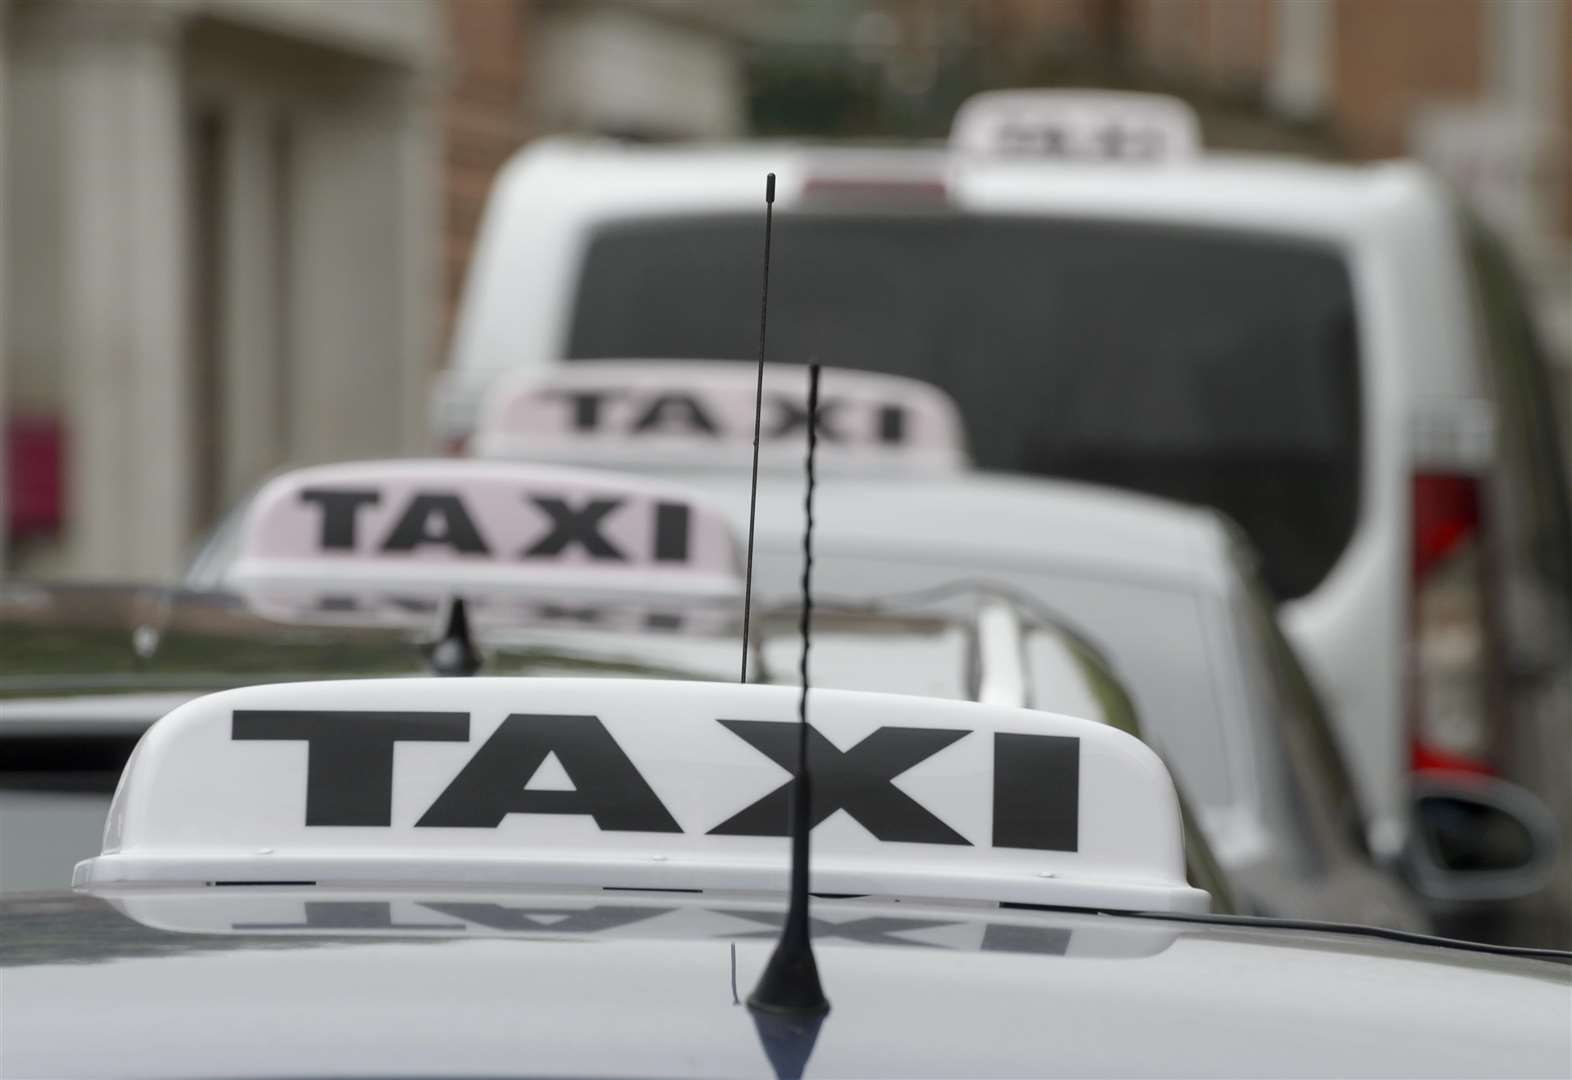 Taxi worries over council's emissions push